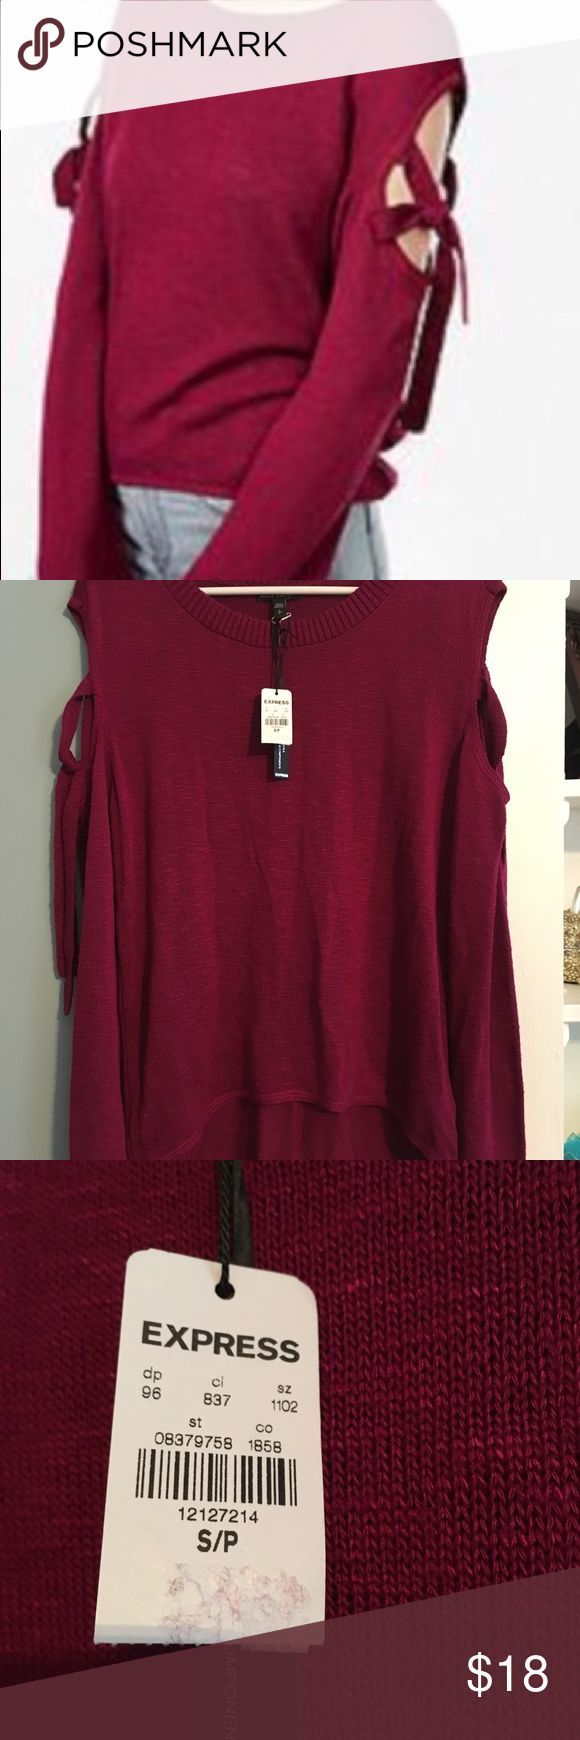 Express sleeve tie high-low sweater New with tags. Sweater is a scoop neck, open at sides with ties. Ties can be knotted or tied in bows. Sleeves have a slight bell at cuffs and sweater is a high-low hem. Very light material...great transitional piece from winter to spring! Express Sweaters Crew & Scoop Necks